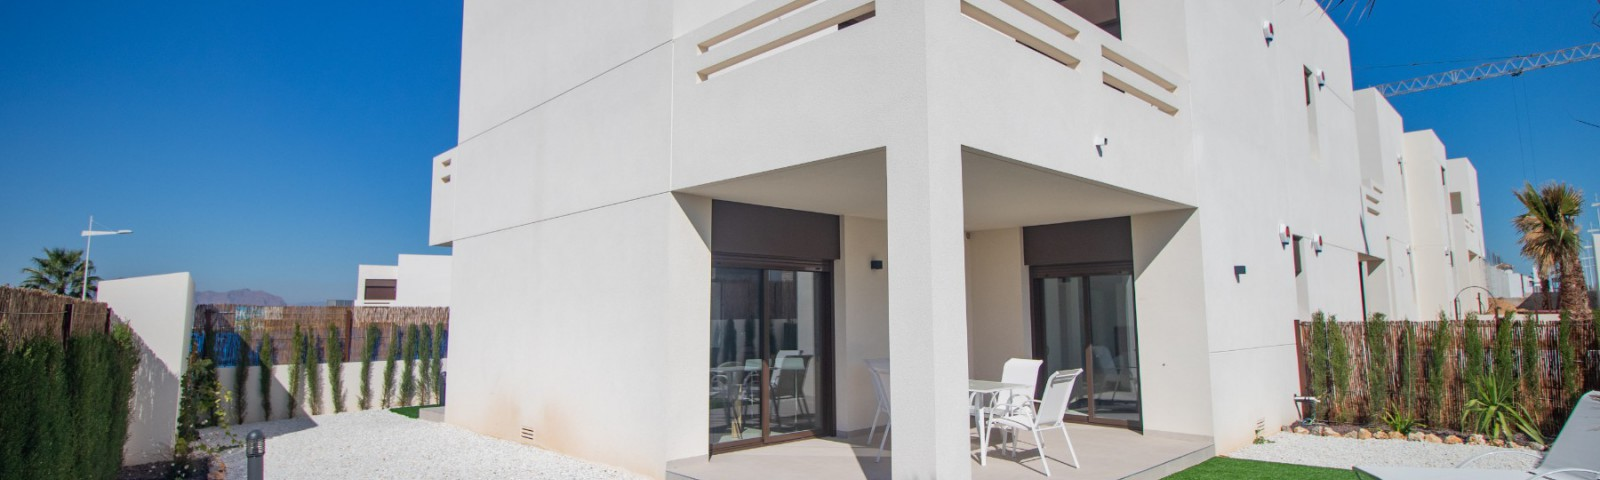 Apartment - New Build - Algorfa - La Finca